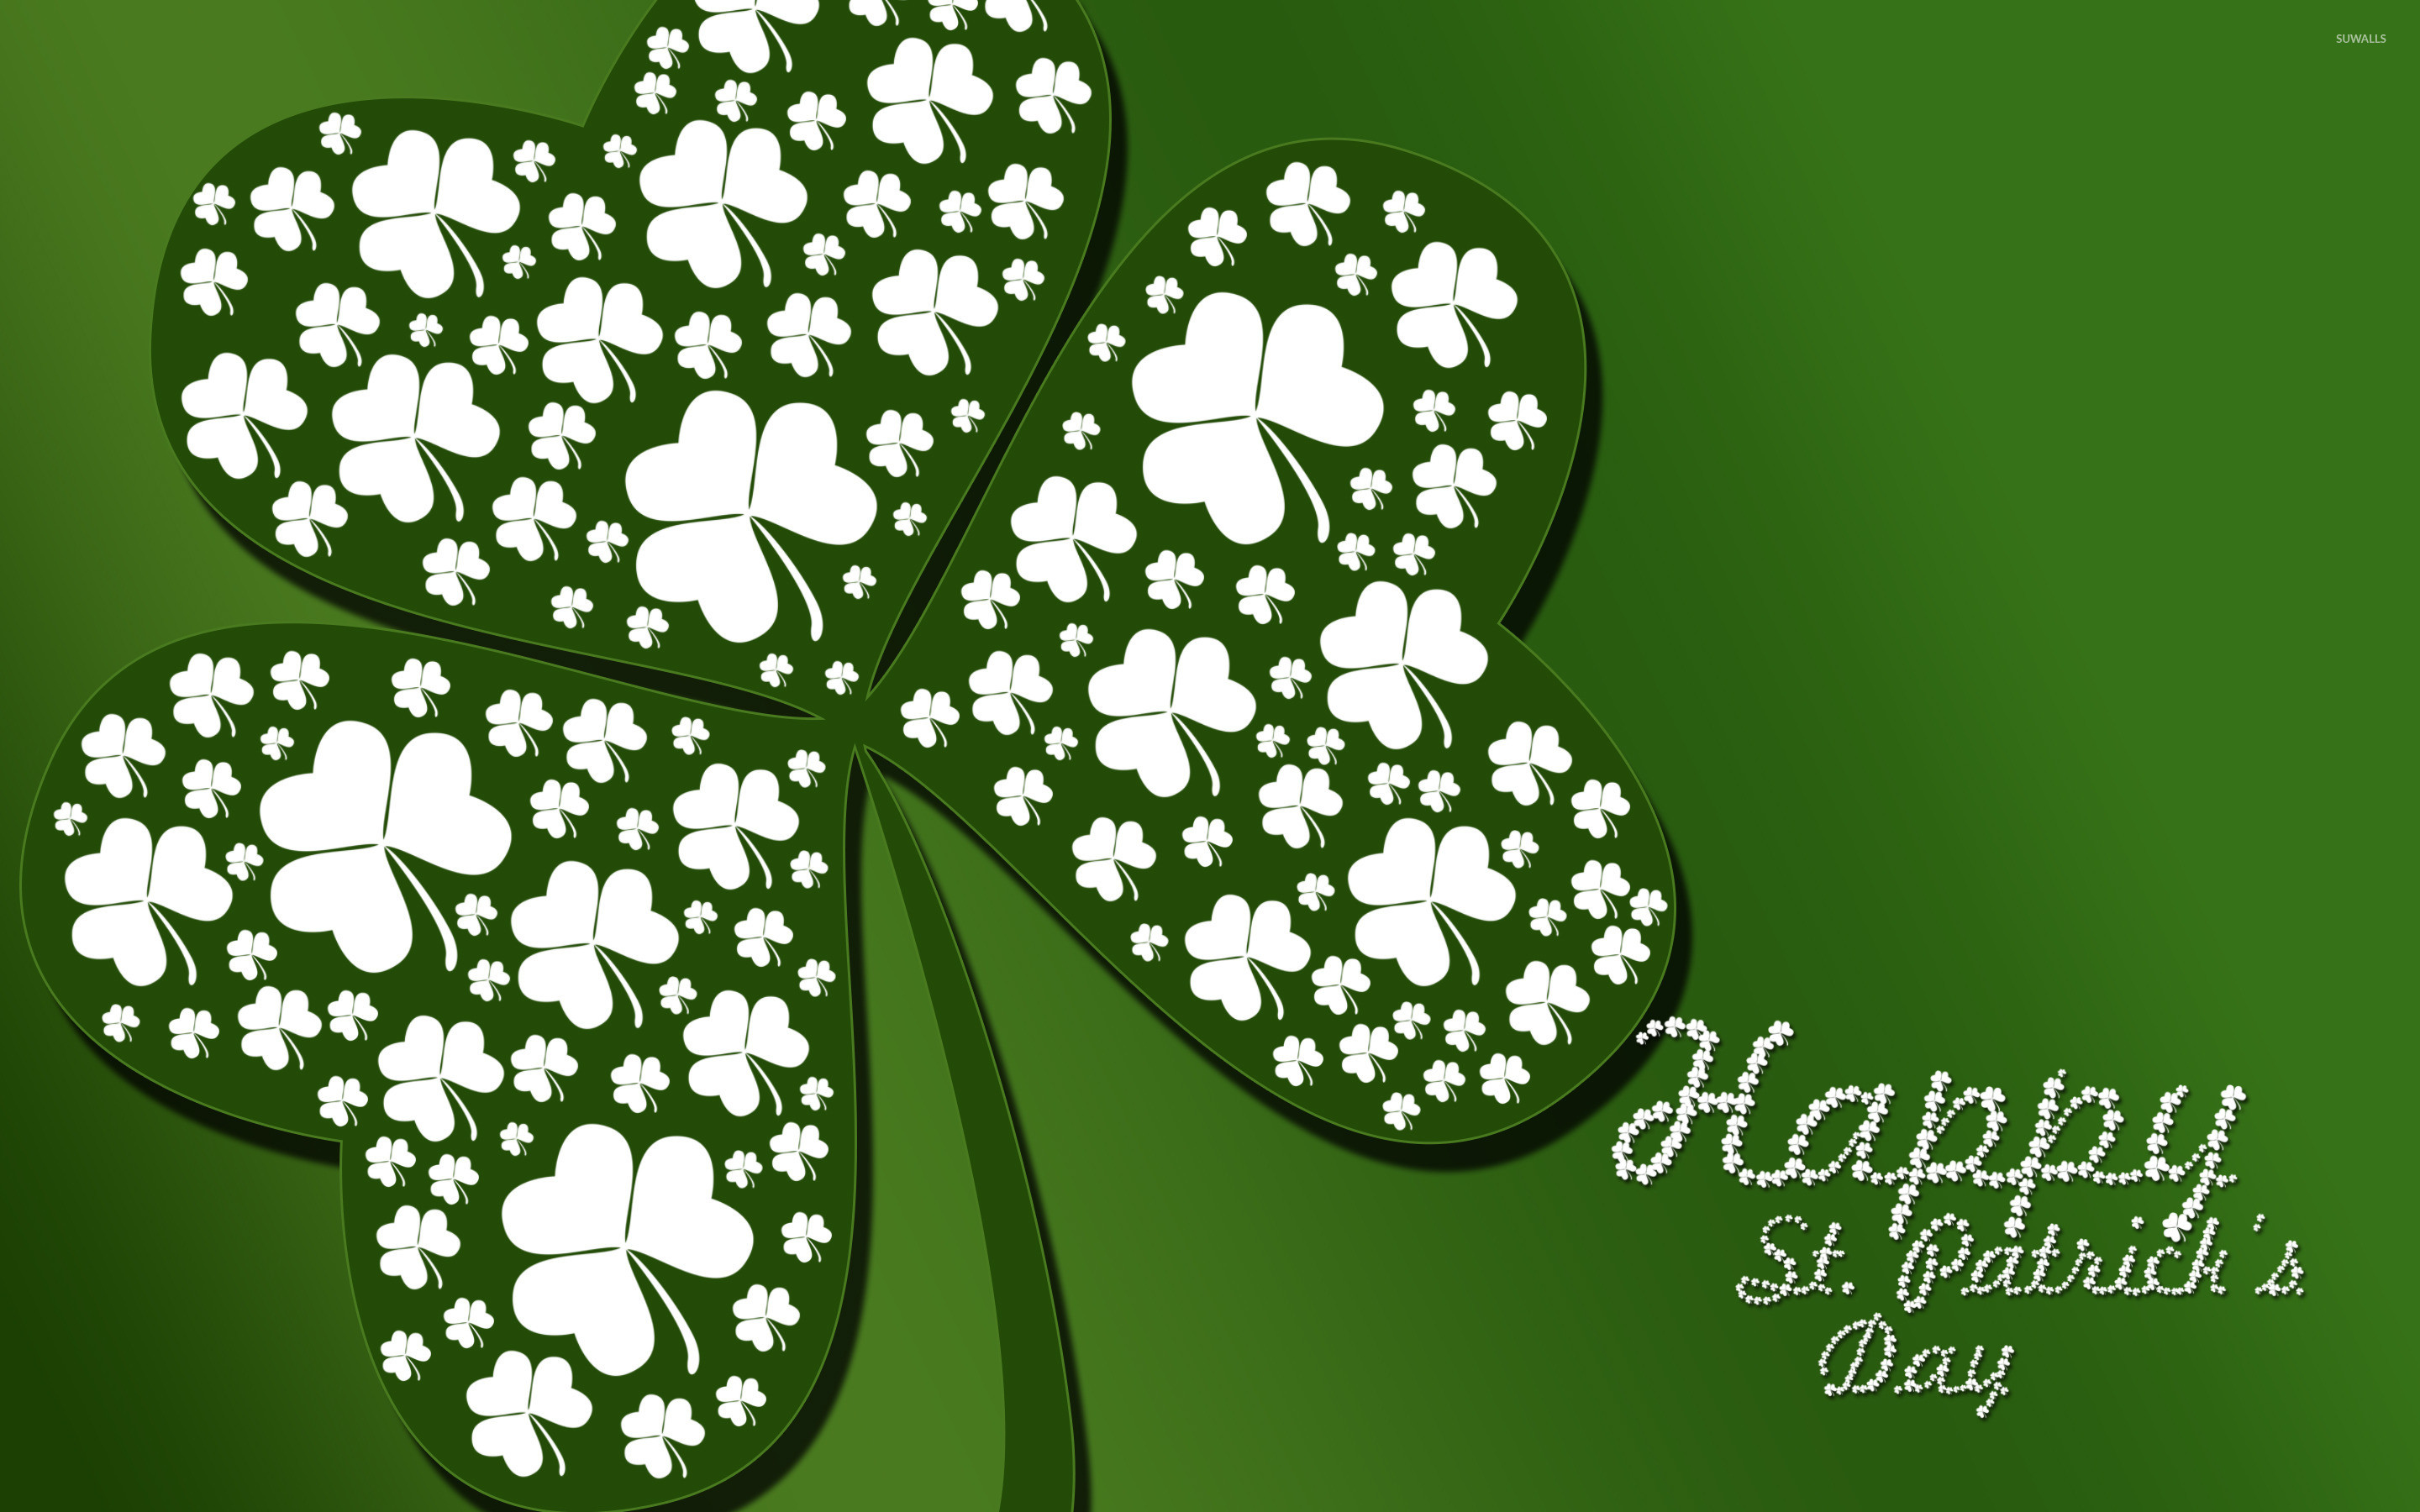 2880x1800 St. Patrick's Day wallpaper  jpg